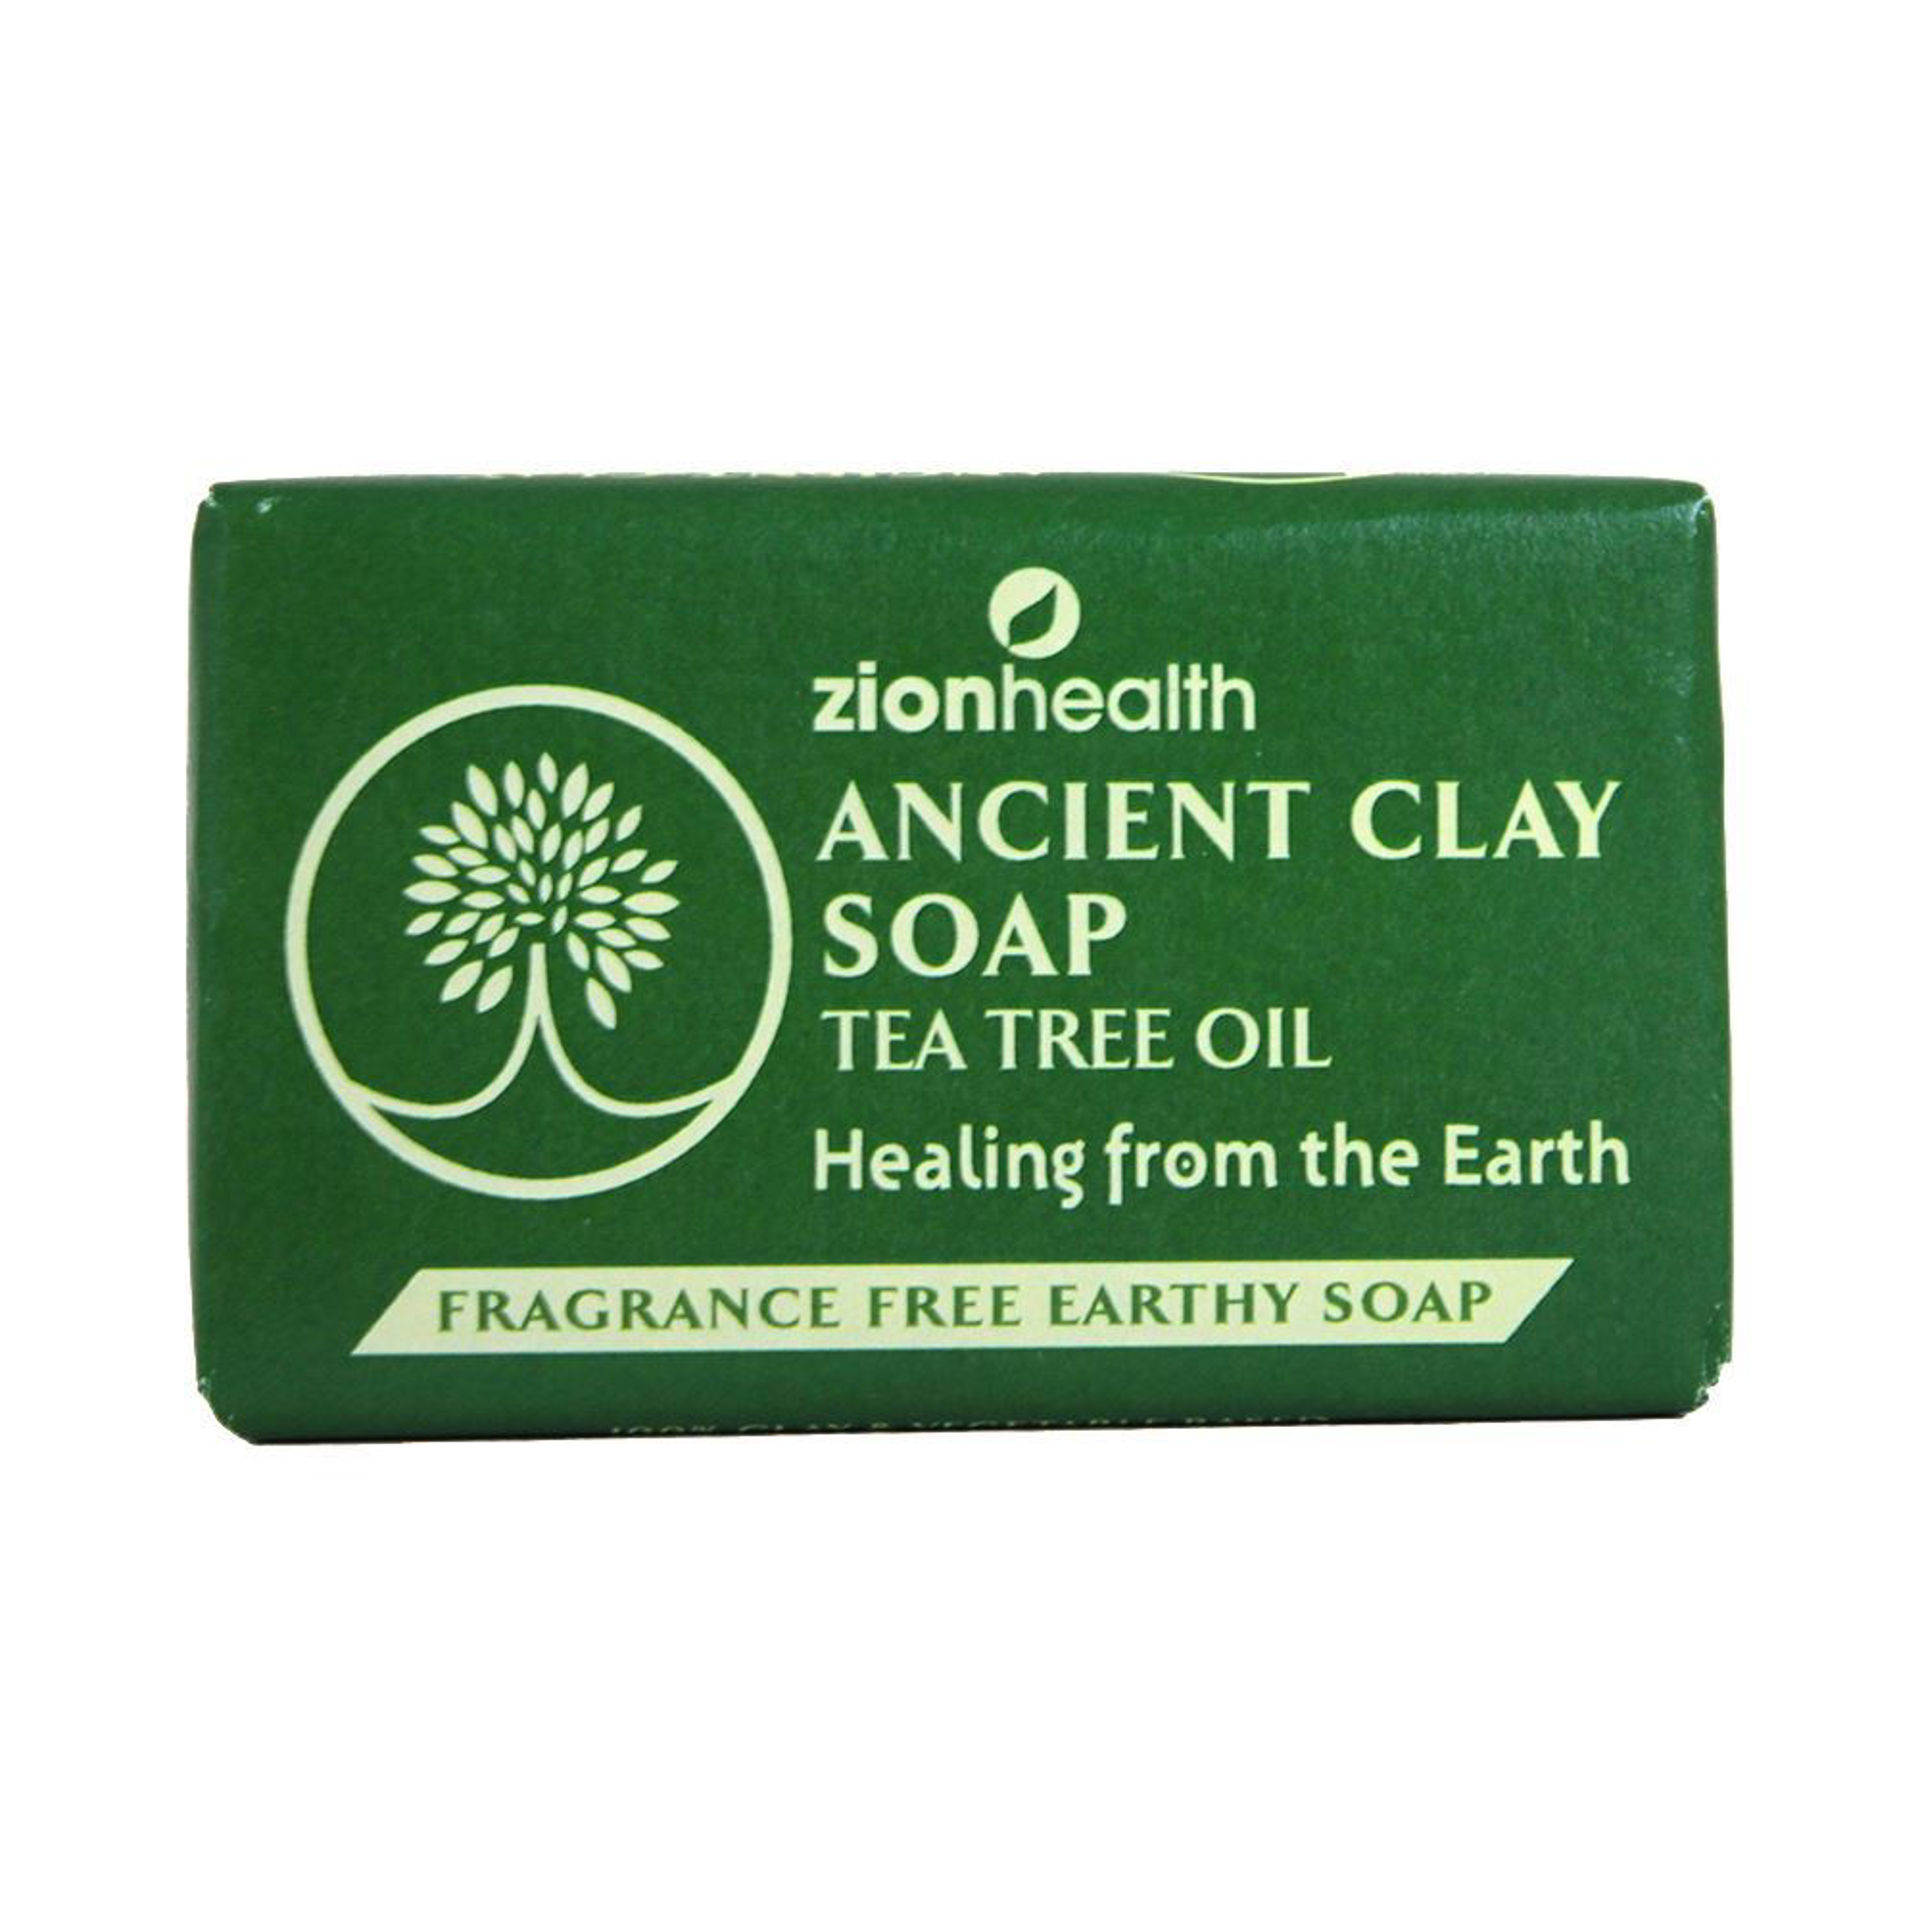 Picture of Tea Tree Oil Ancient Clay Soap - 6 oz.